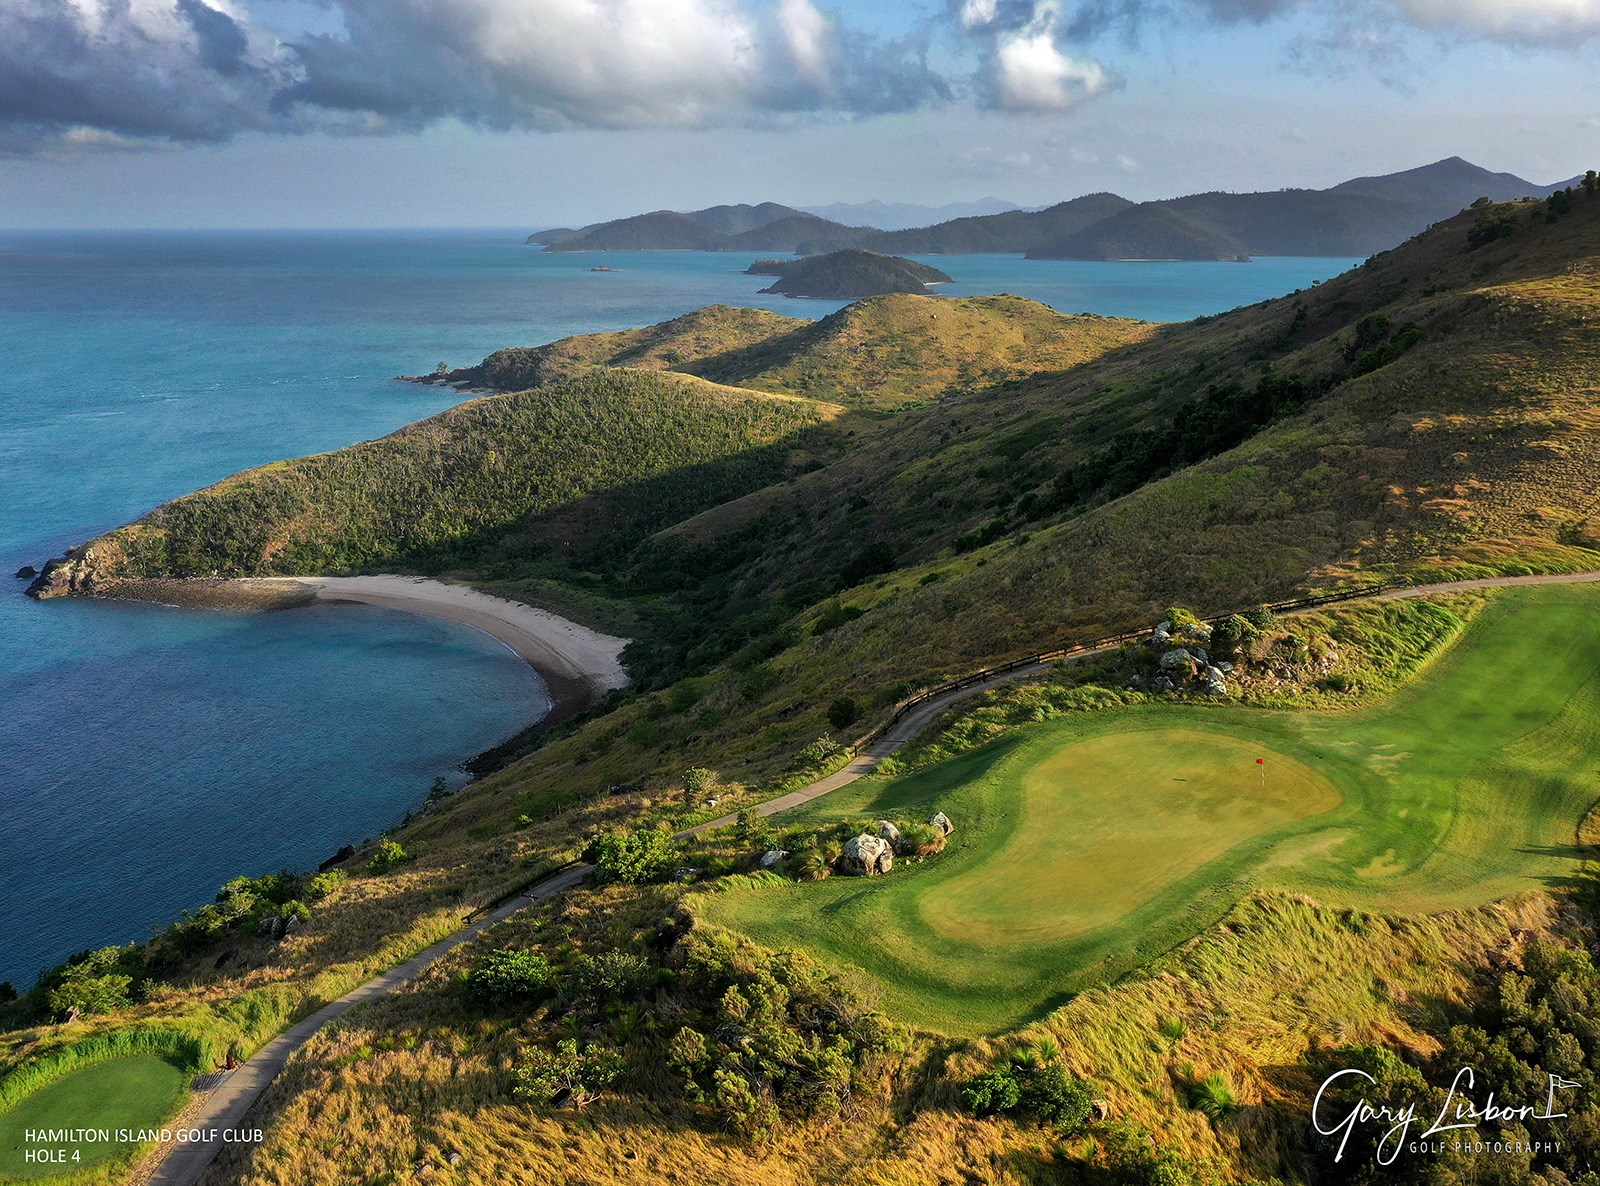 Hamilton Island Golf Club Hole 4